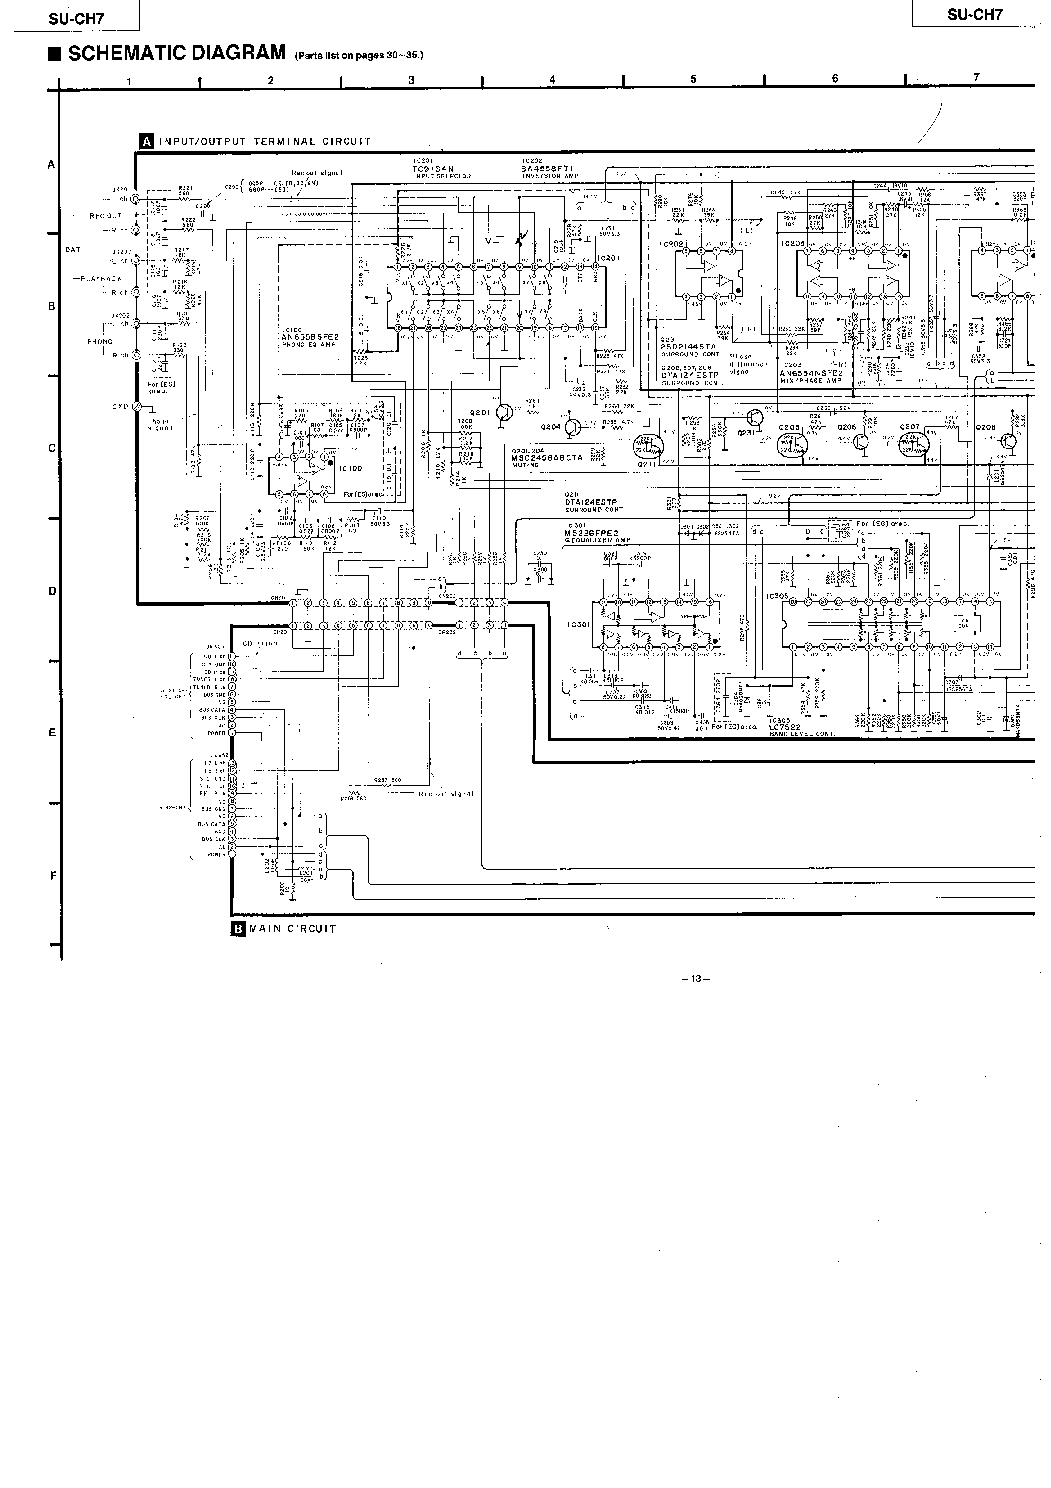 Technics Su Ch7 Service Manual Download Schematics